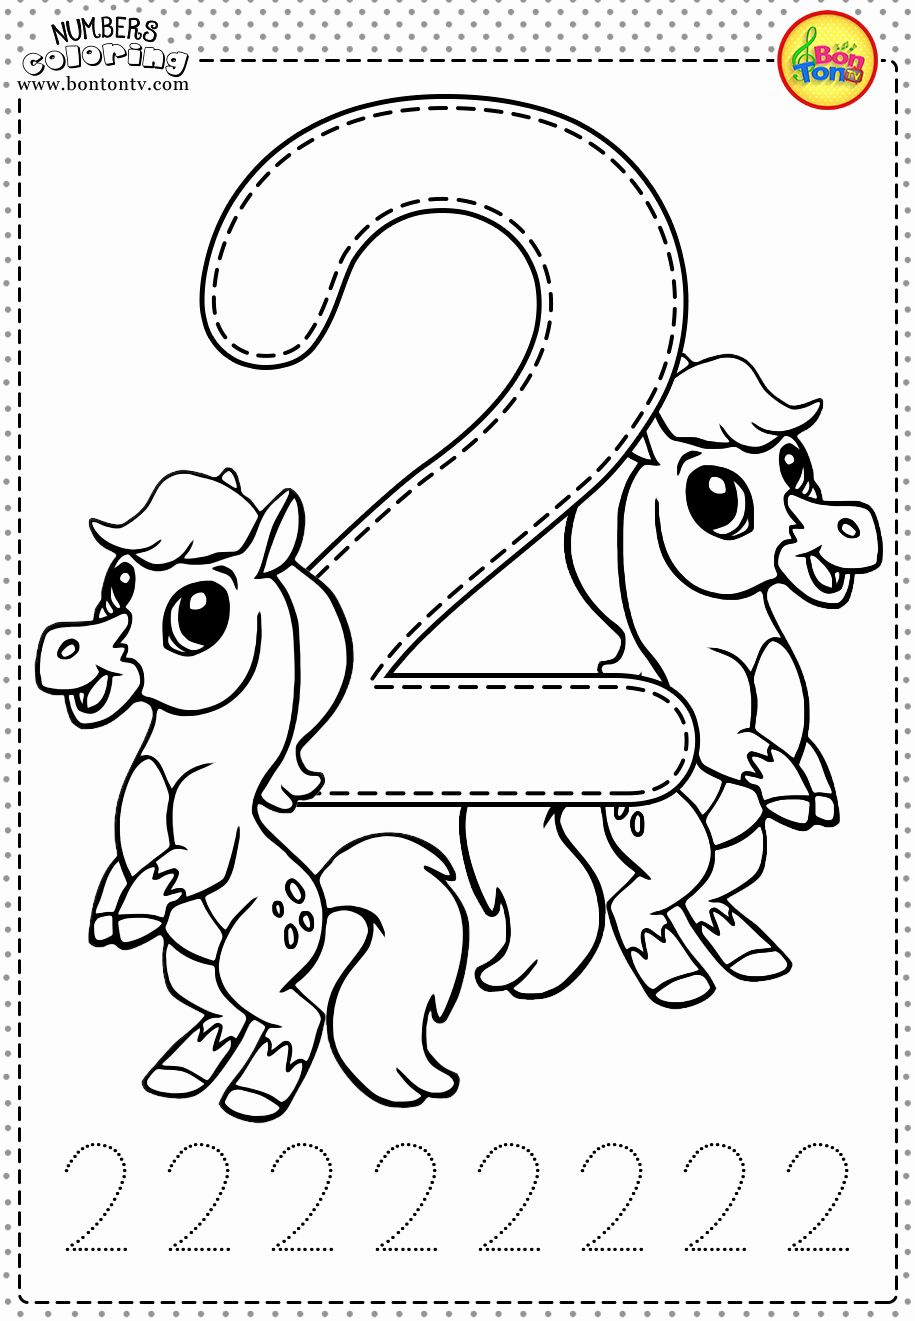 Coloring Activities for 5 Year Olds Free preschool